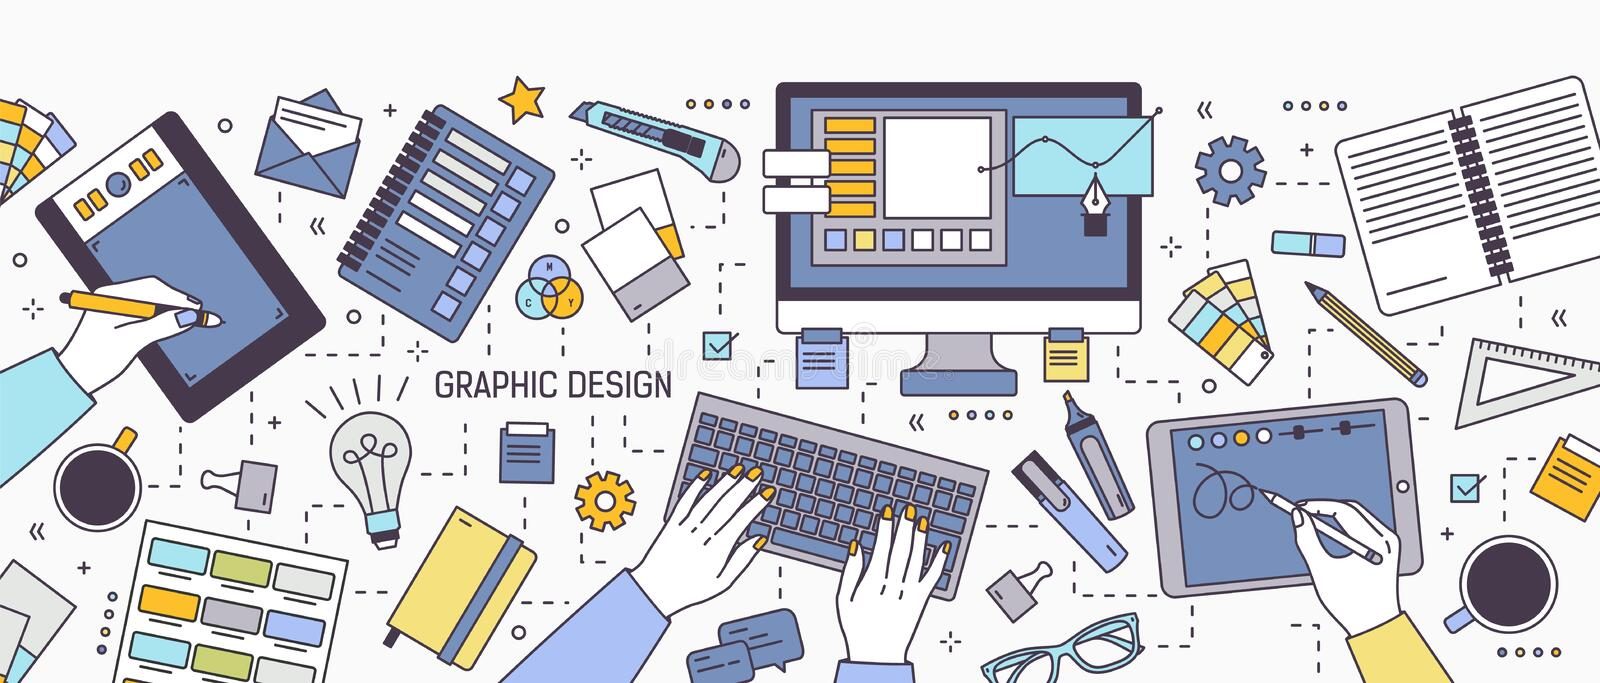 Horizontal banner with hands of designer working on computer or drawing on tablet surrounded by office supplies and art stock illustration